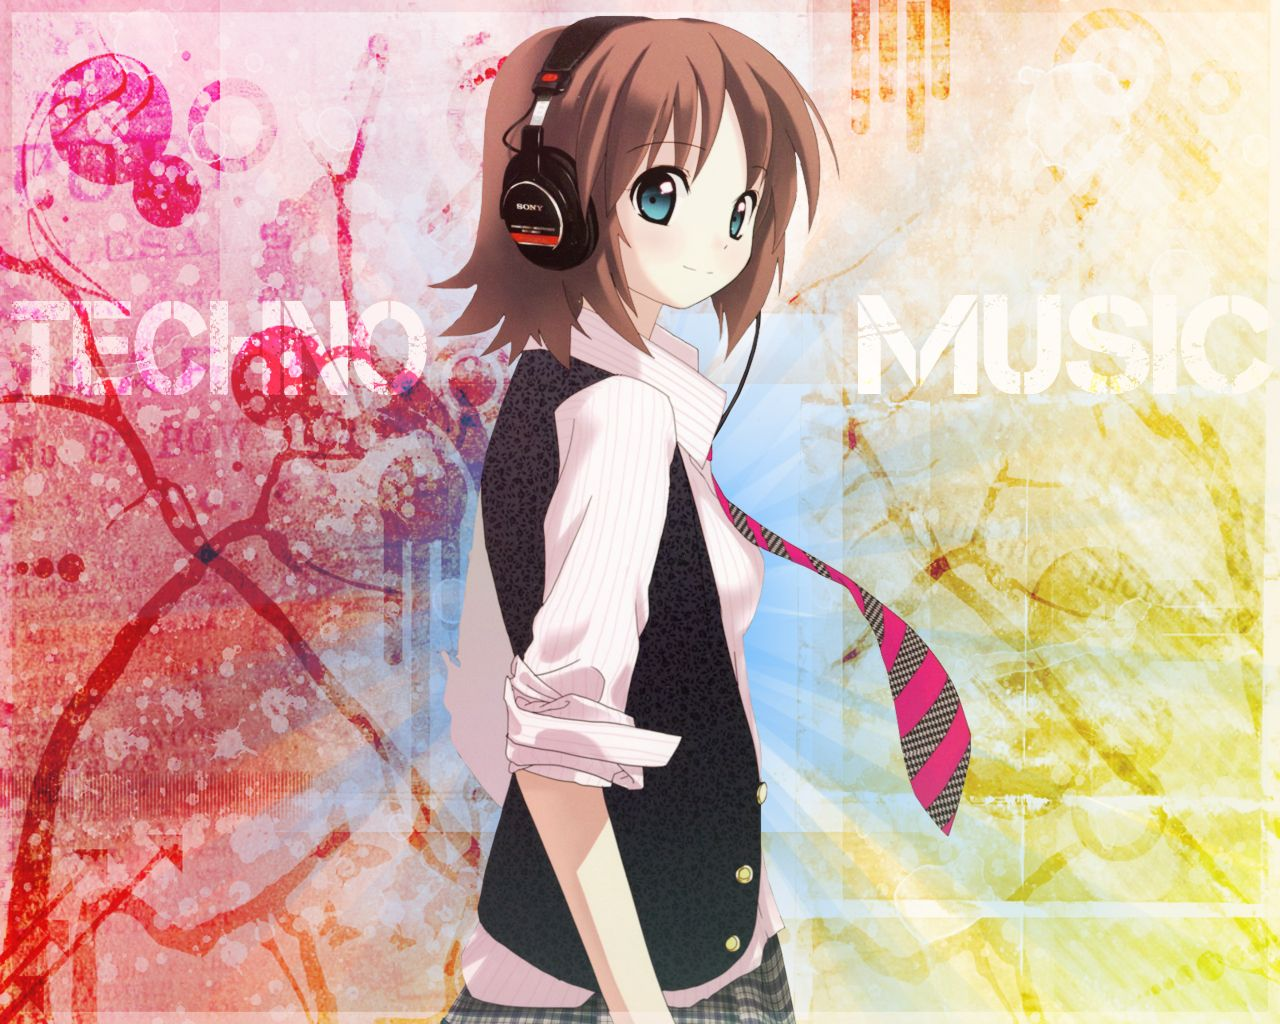 wallpapers anime music Buscar con Google (con imágenes